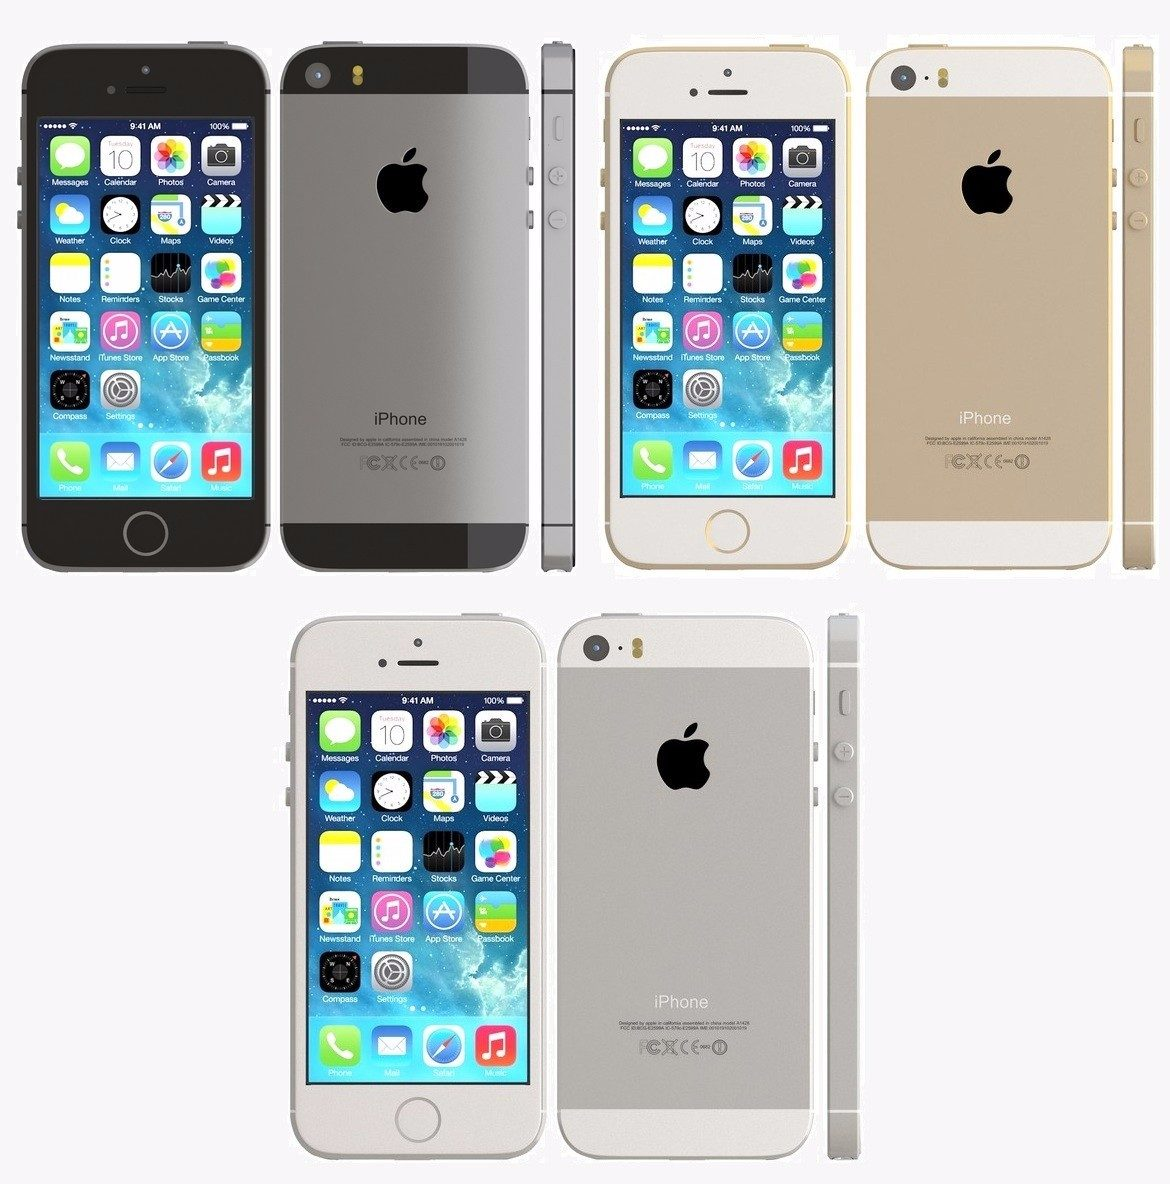 Phone House Iphone 5 Libre Iphone 5s 16gb Libre Telcel Att Movistar Dorado Plata Gris